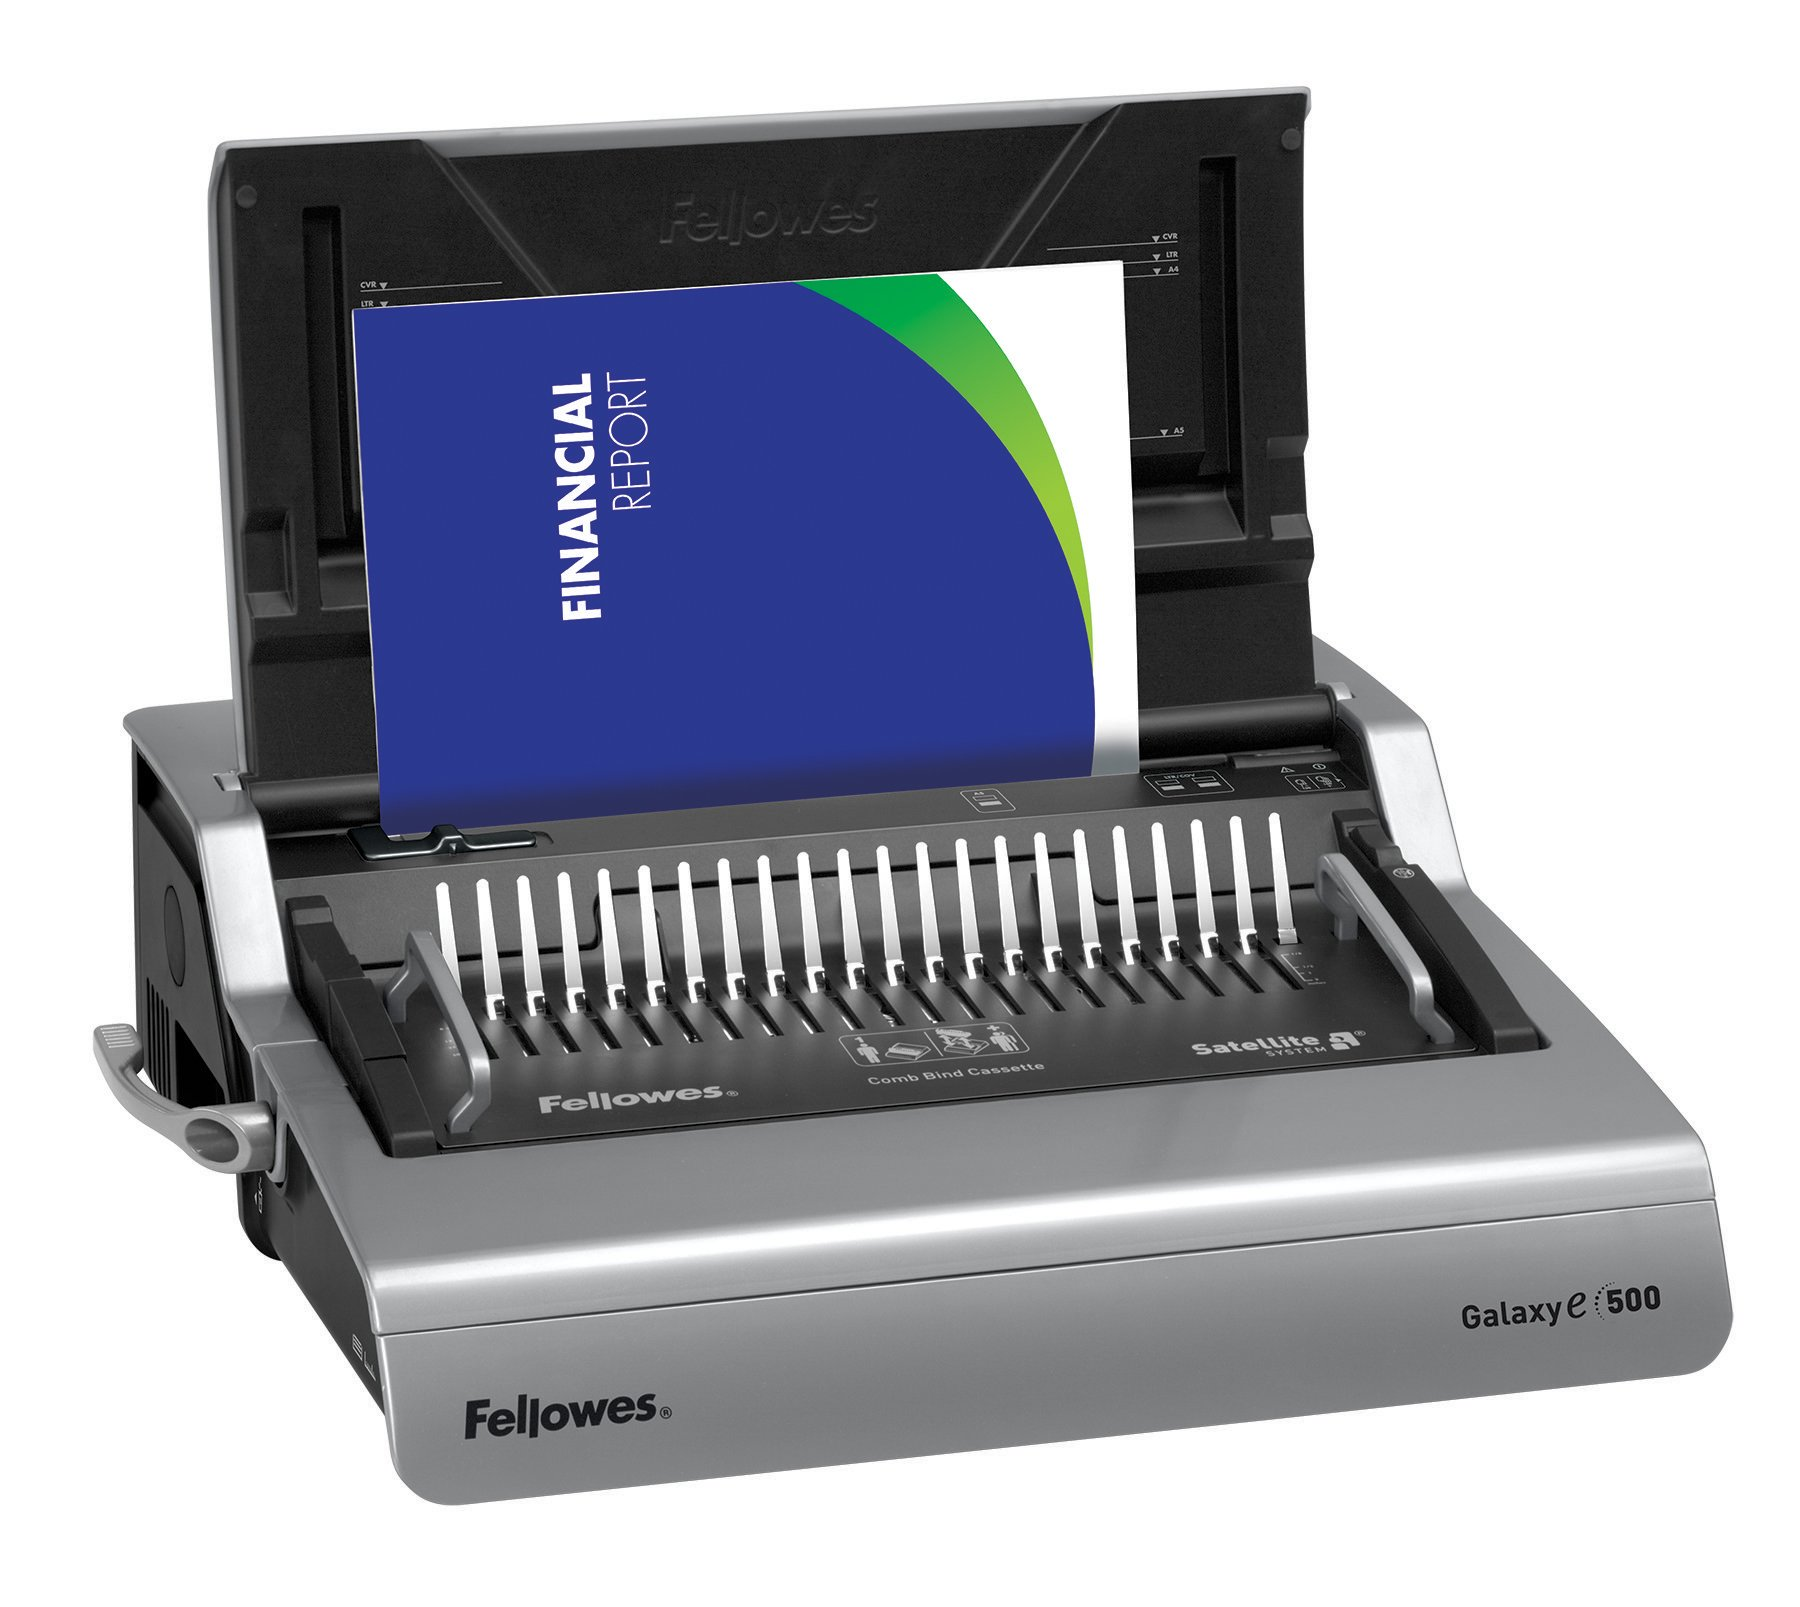 Fellowes 5218301 Galaxy 500 Electric Comb Binding System, 500 Sheets, 19 5/8x17 3/4x6 1/2, Gray by Fellowes (Image #2)